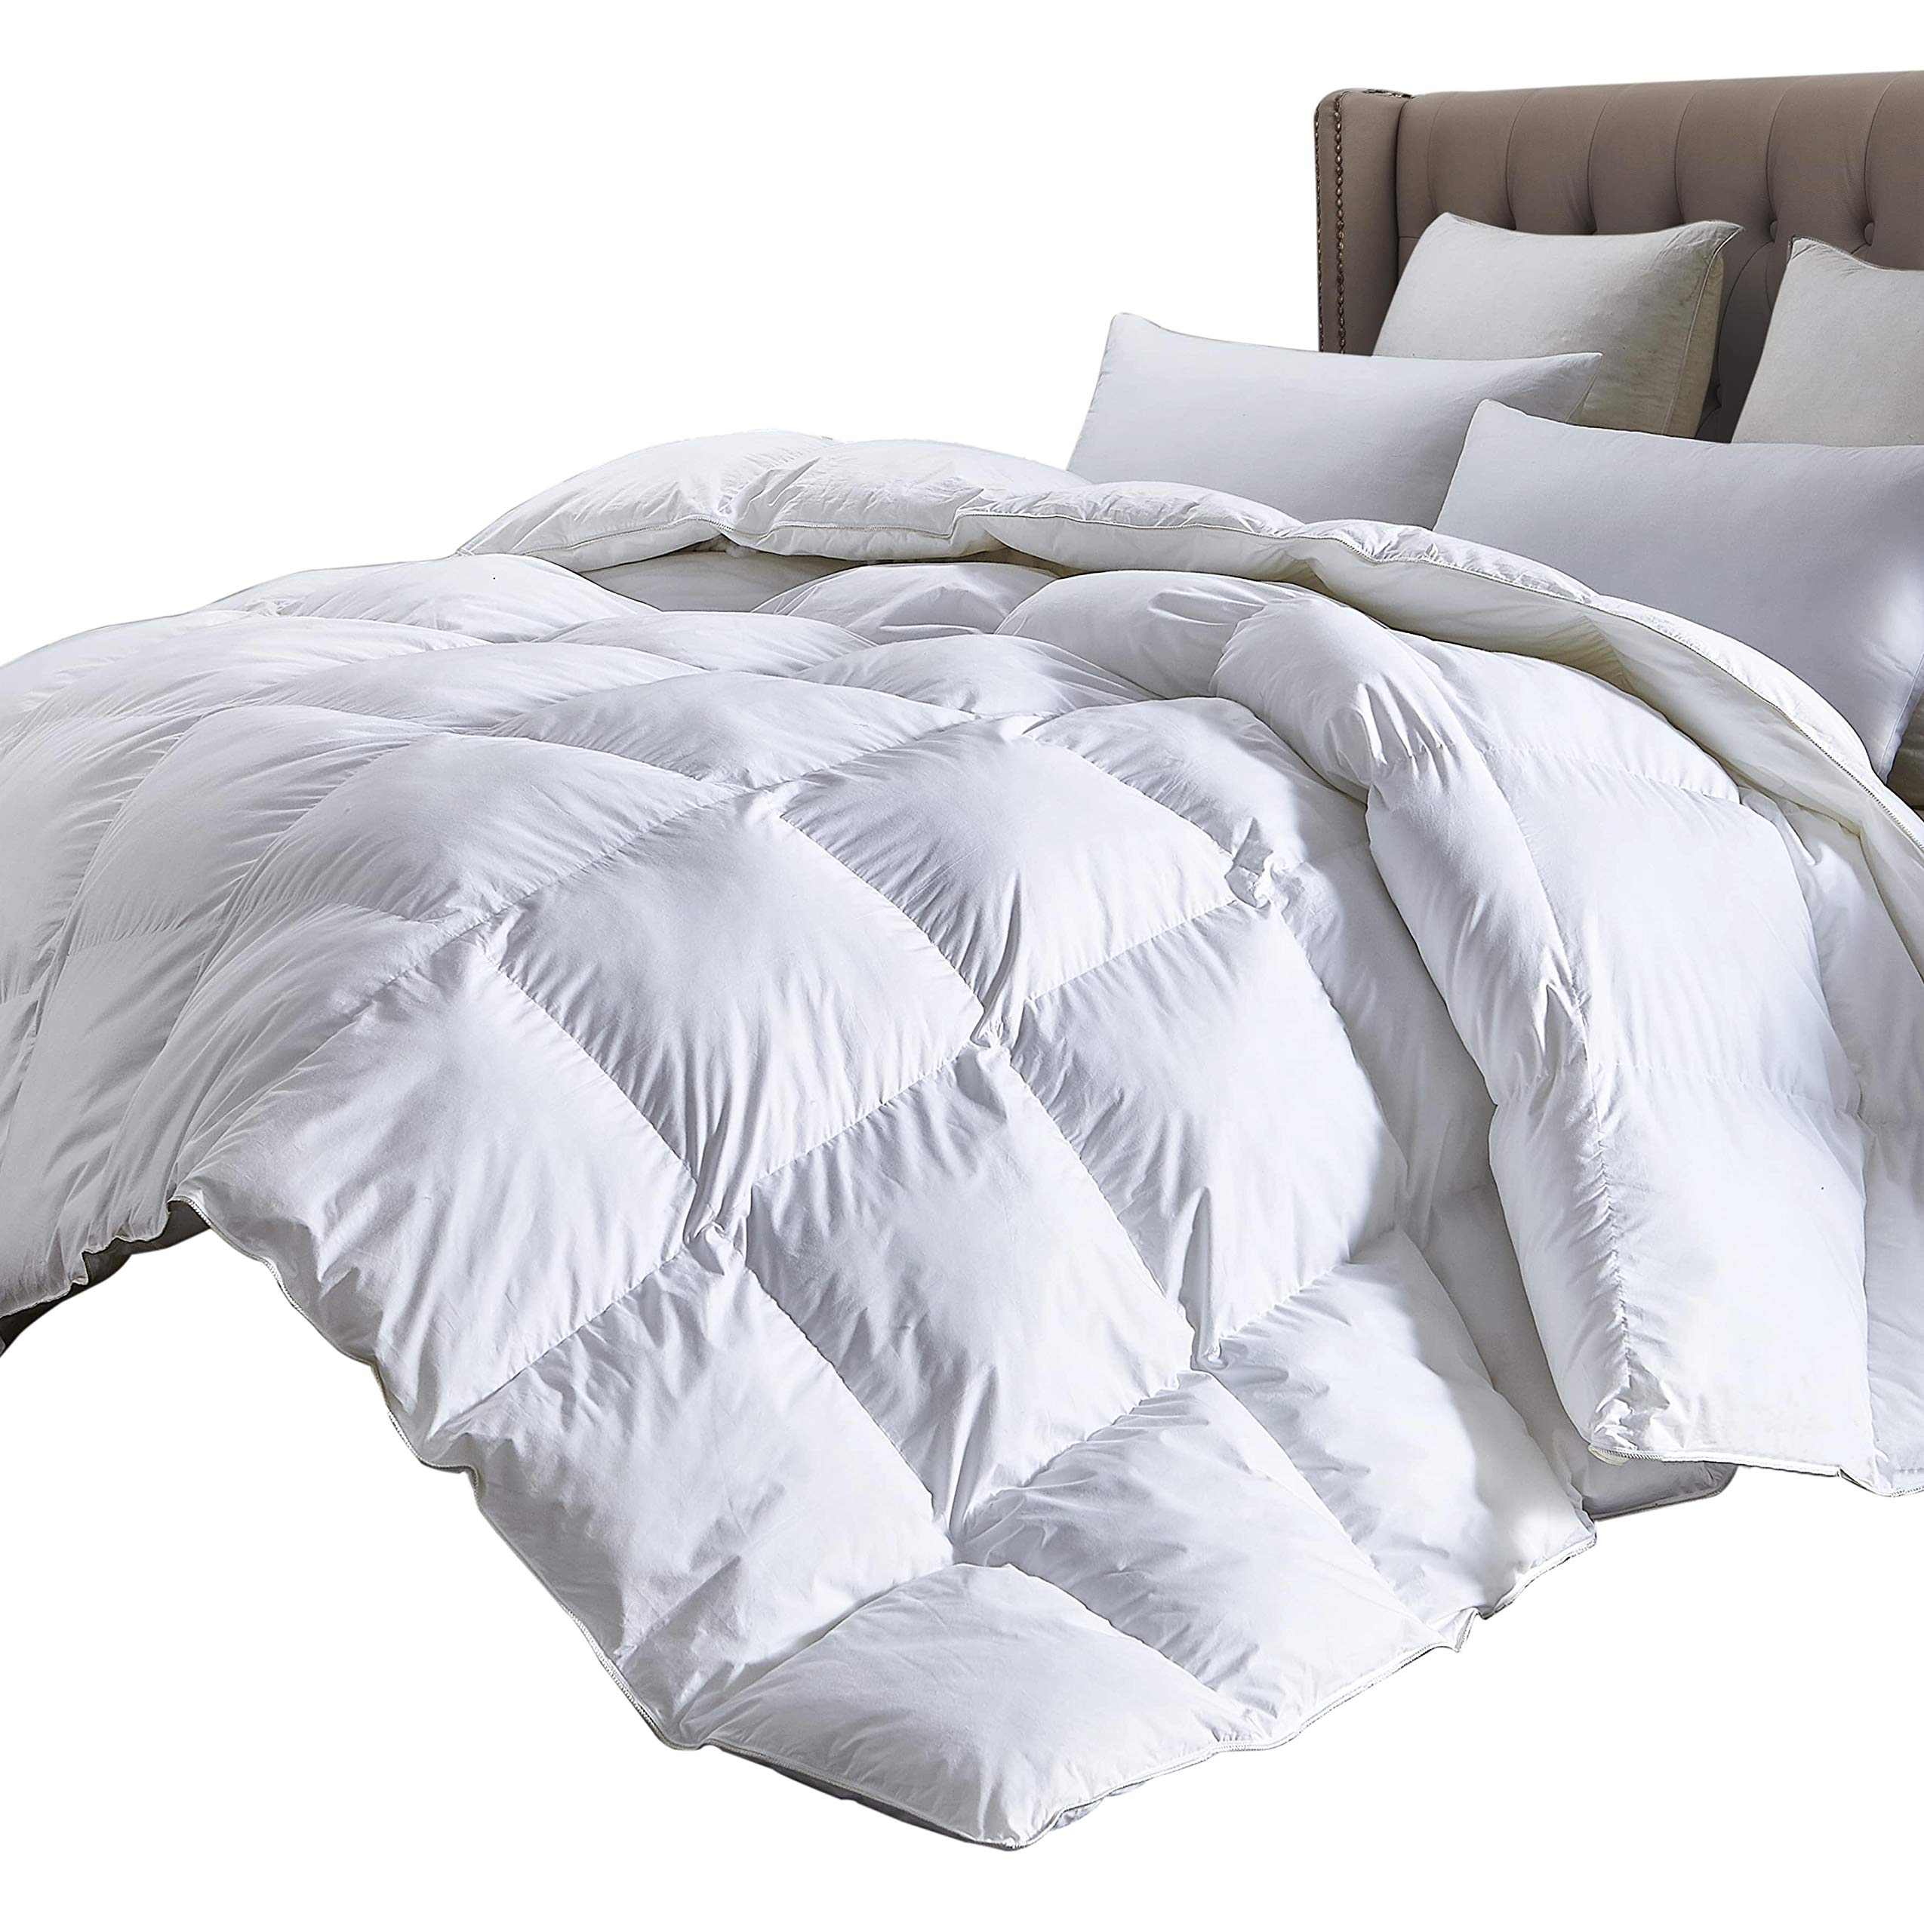 Luxurious Twin Size Lightweight GOOSE DOWN Comforter Duvet Insert All Season, 1200 Thread Count 100% Egyptian Cotton, 750+ Fill Power, 35 oz Fill Weight, Hypoallergenic, White Color